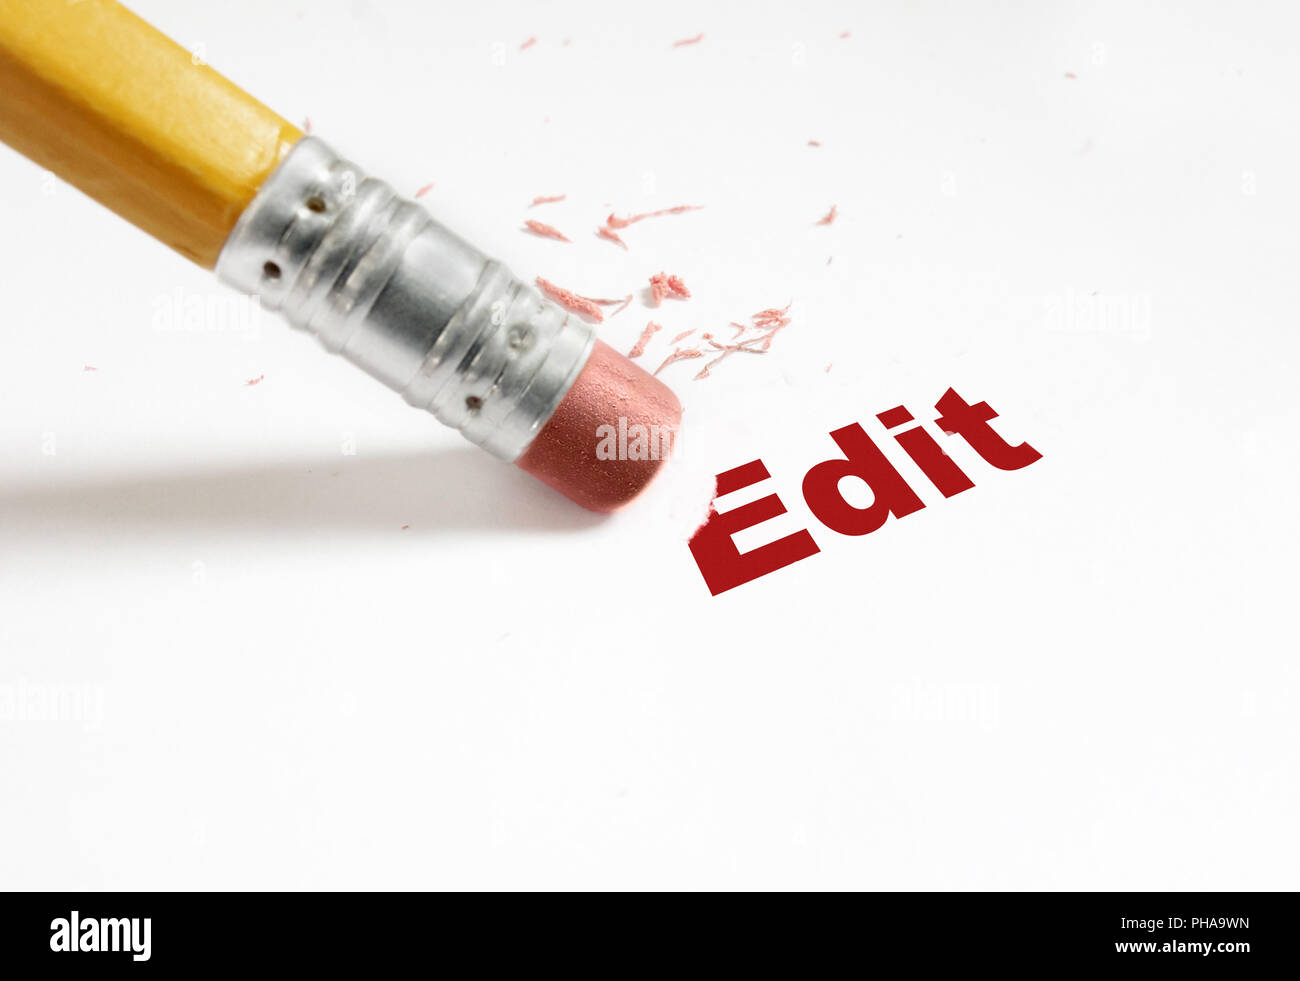 edit red - Stock Image